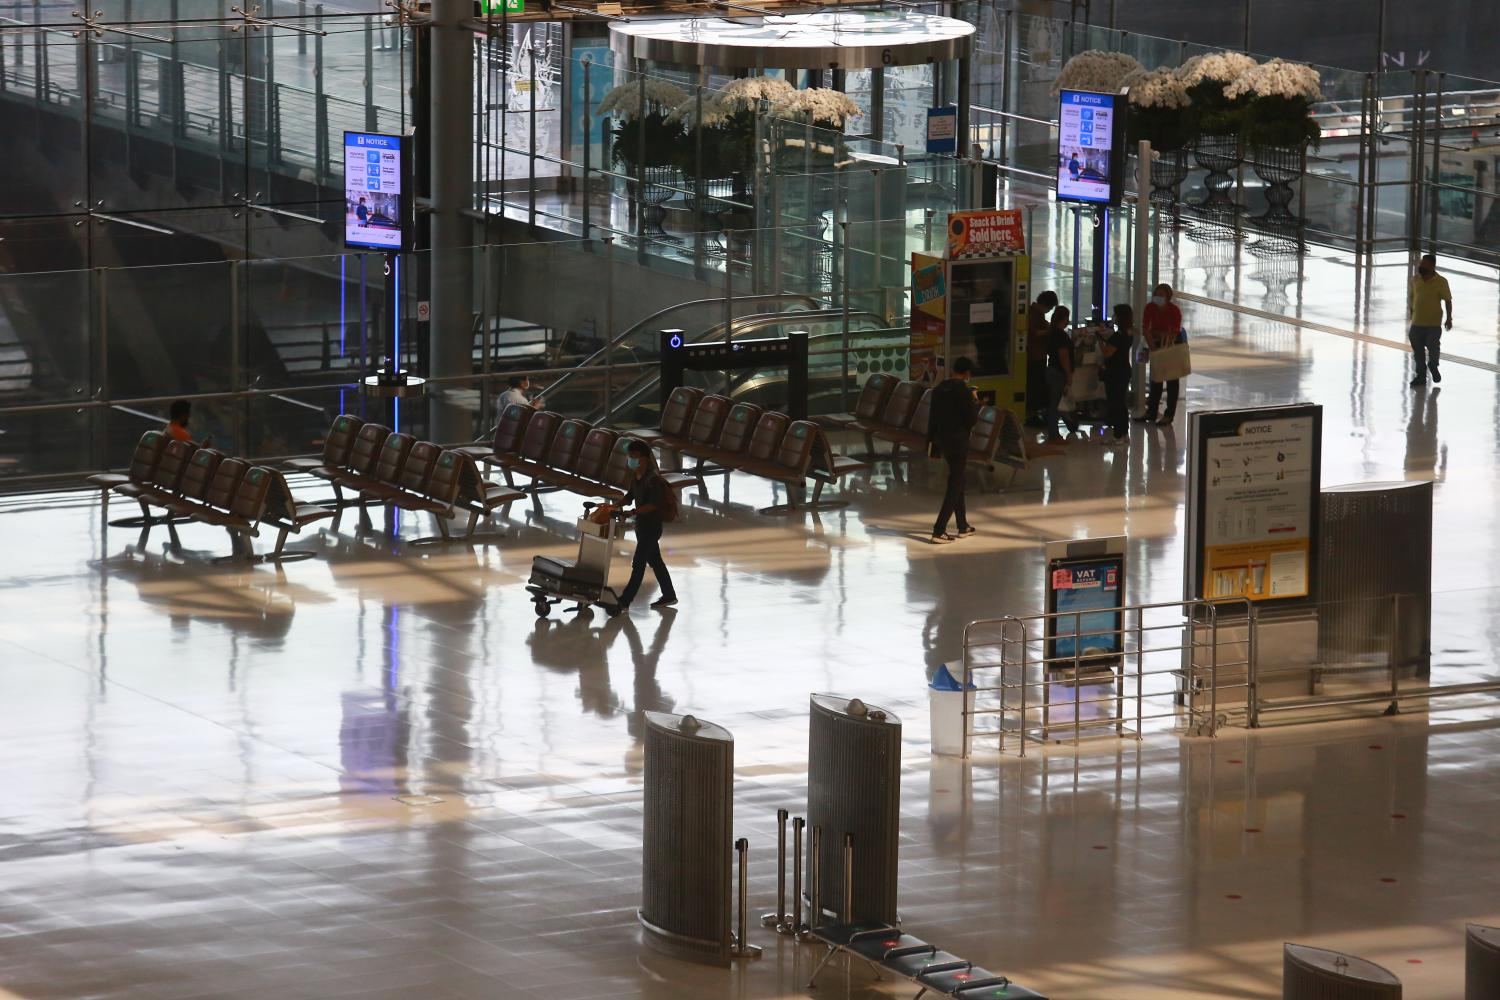 Suvarnabhumi airport is nearly deserted because of a lack of travellers. Hotels are expected to continue suffering from the pandemic as travel restrictions remain in place to curb the spread of Covid-19.(Photo by Somchai Poomlard)